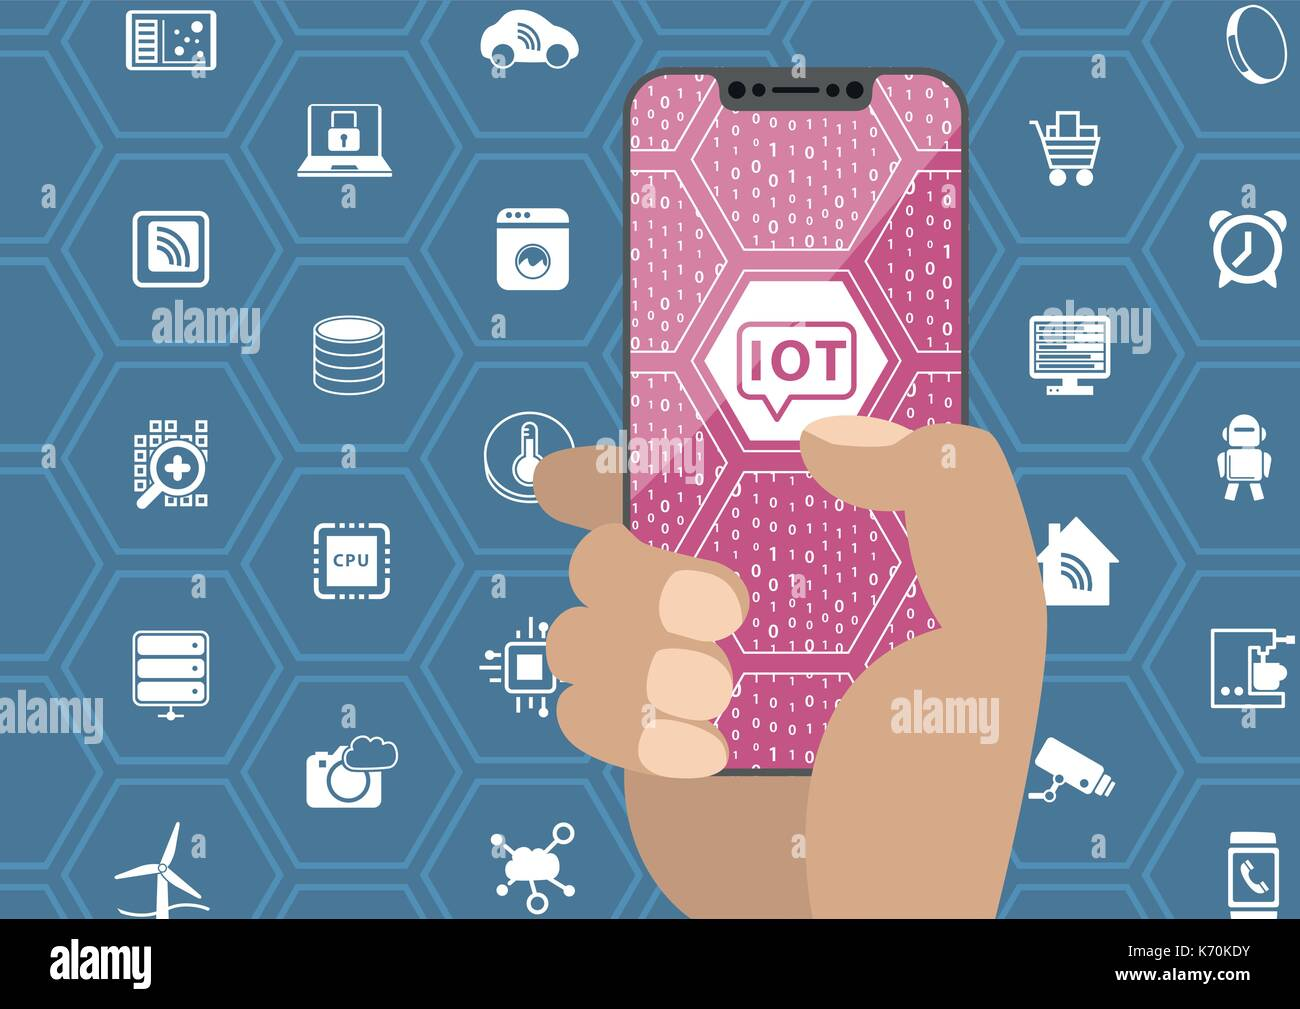 IOT / internet of things concept with hand holding bezel free smartphone. Symbols and frameless display as vector illustration. Stock Vector